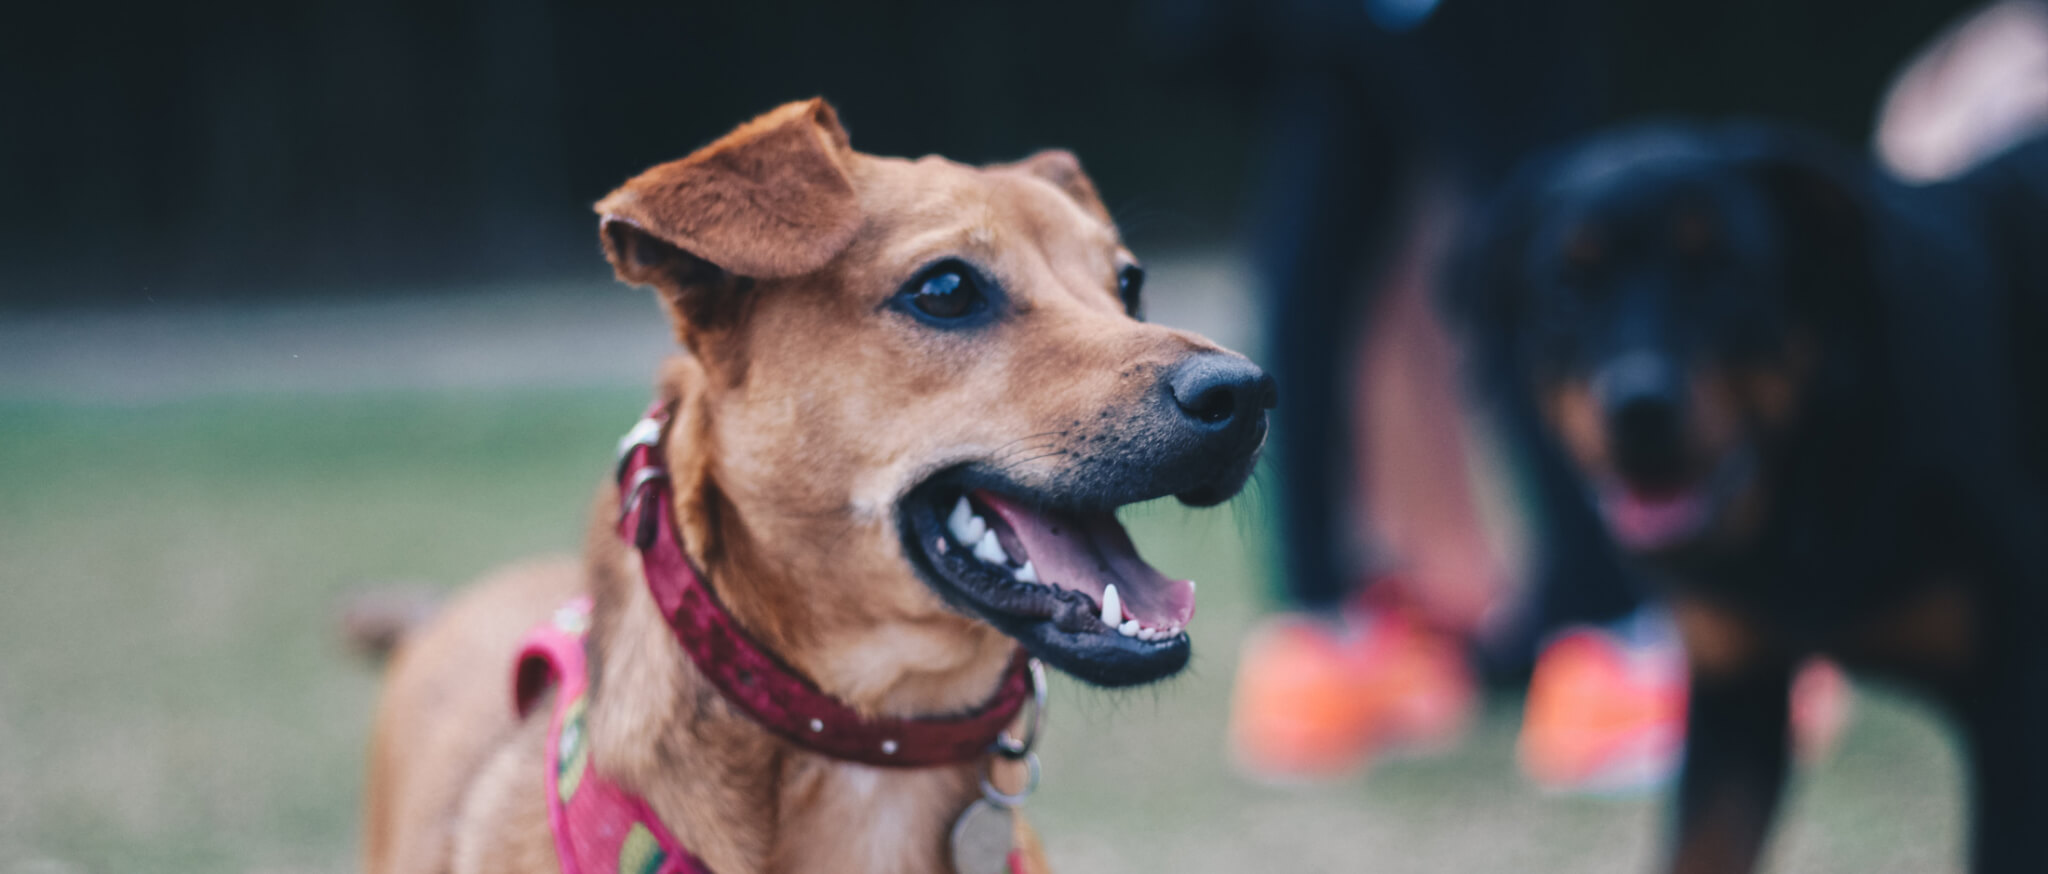 Whole Dog Camp at Bliss Woods Farm - Freestyle Freeport: Open House and Canine Good Citizen Testing